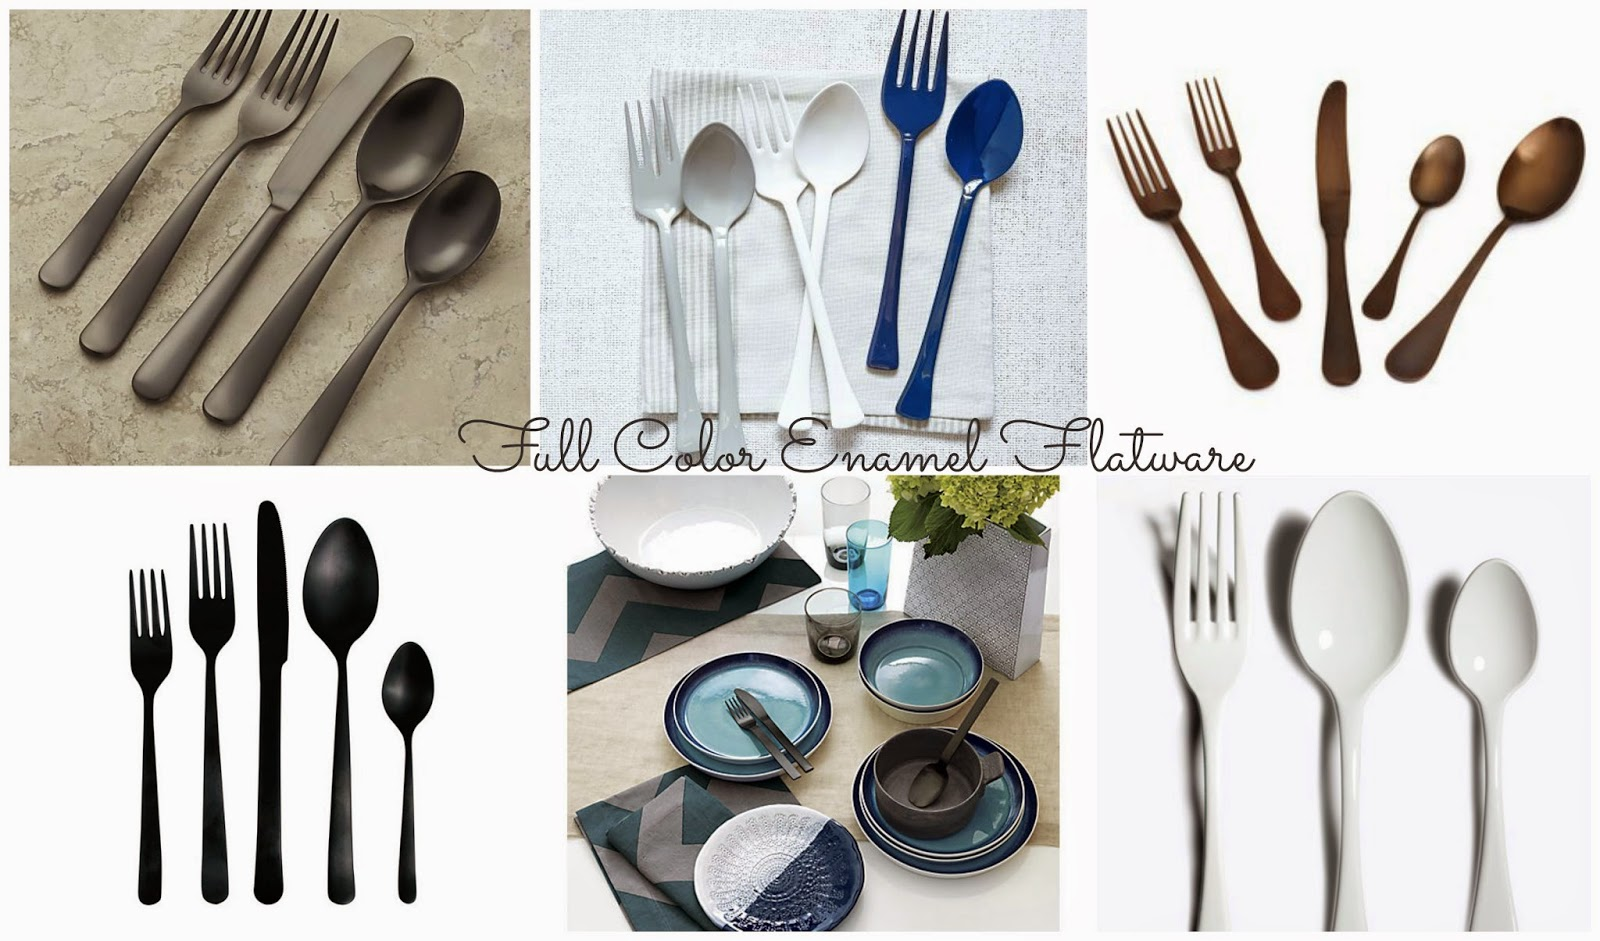 Black Satin Jett Flatware (Crate And Barrel) Enamel Servers (West Elm)  Rocco Brushed Chocolate Flatware (Sur La Table) Oslo Versatile Cutlery Set  In Matte ...